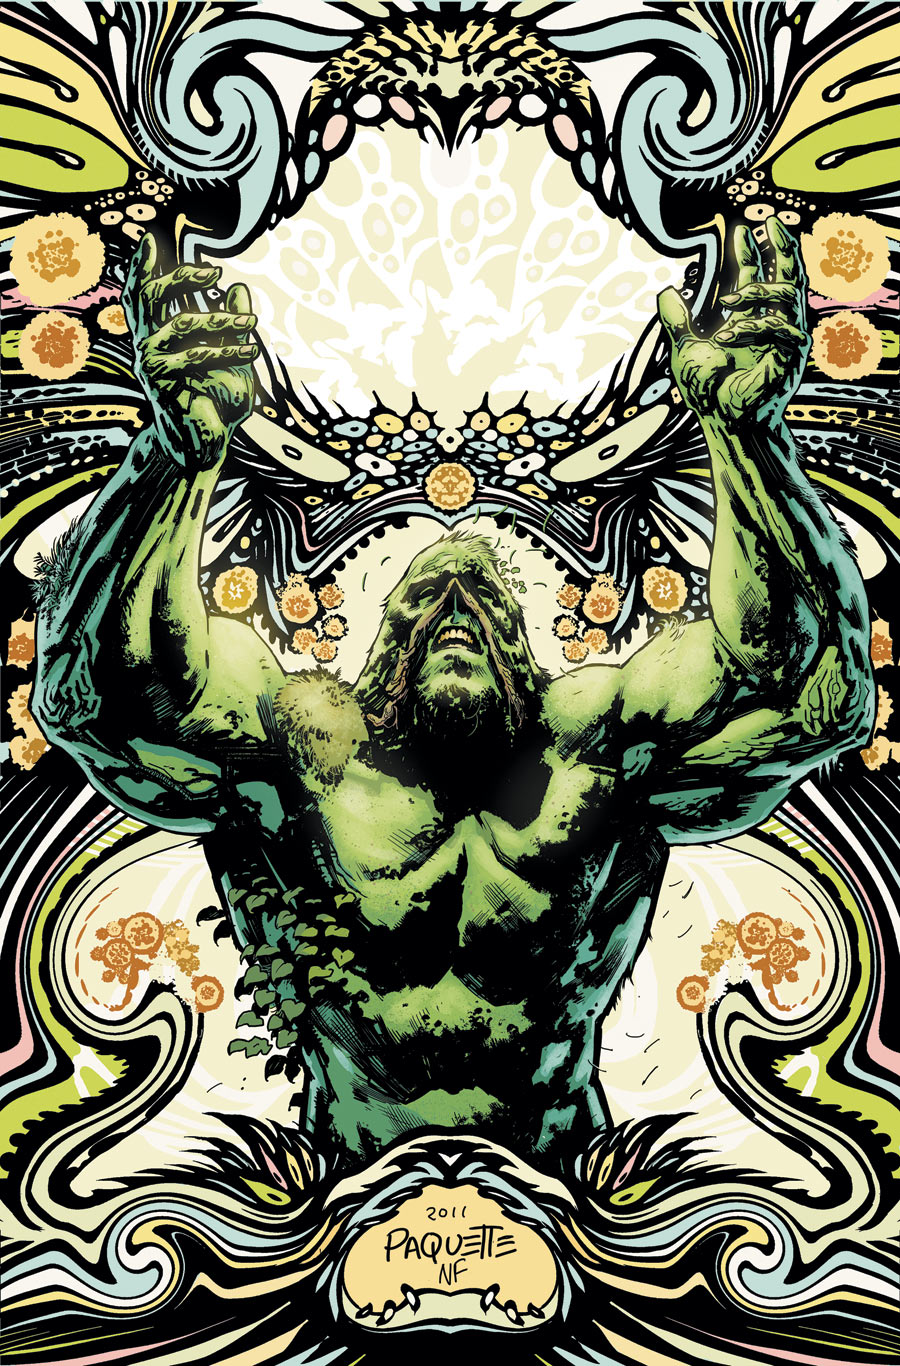 Swamp Thing #7 (2012) - Yanick Paquette